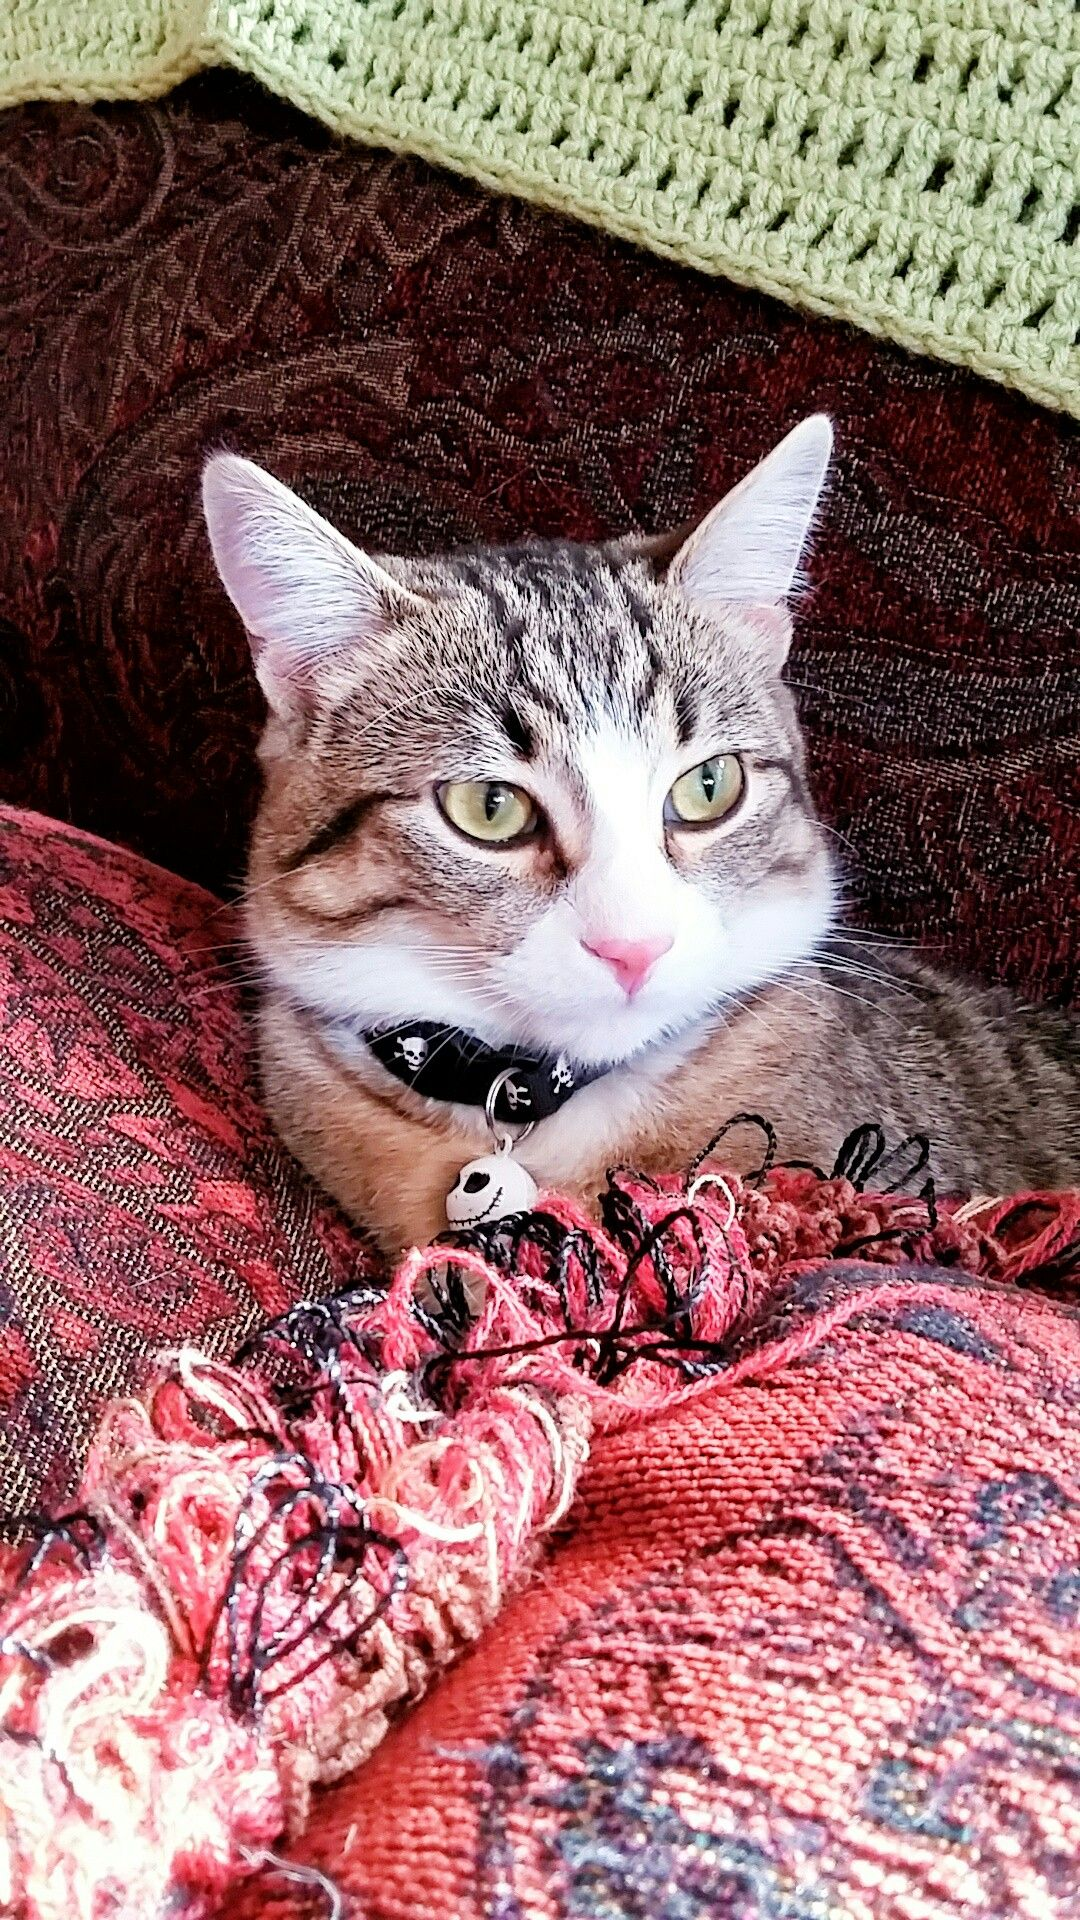 Loki The Therapy Cat Is Growing Up To Be A Handsome Young Boy I Love This Little Guy To Bits Rescuecat Catportrait Ta Kitten Love Kittens Cutest Baby Cats